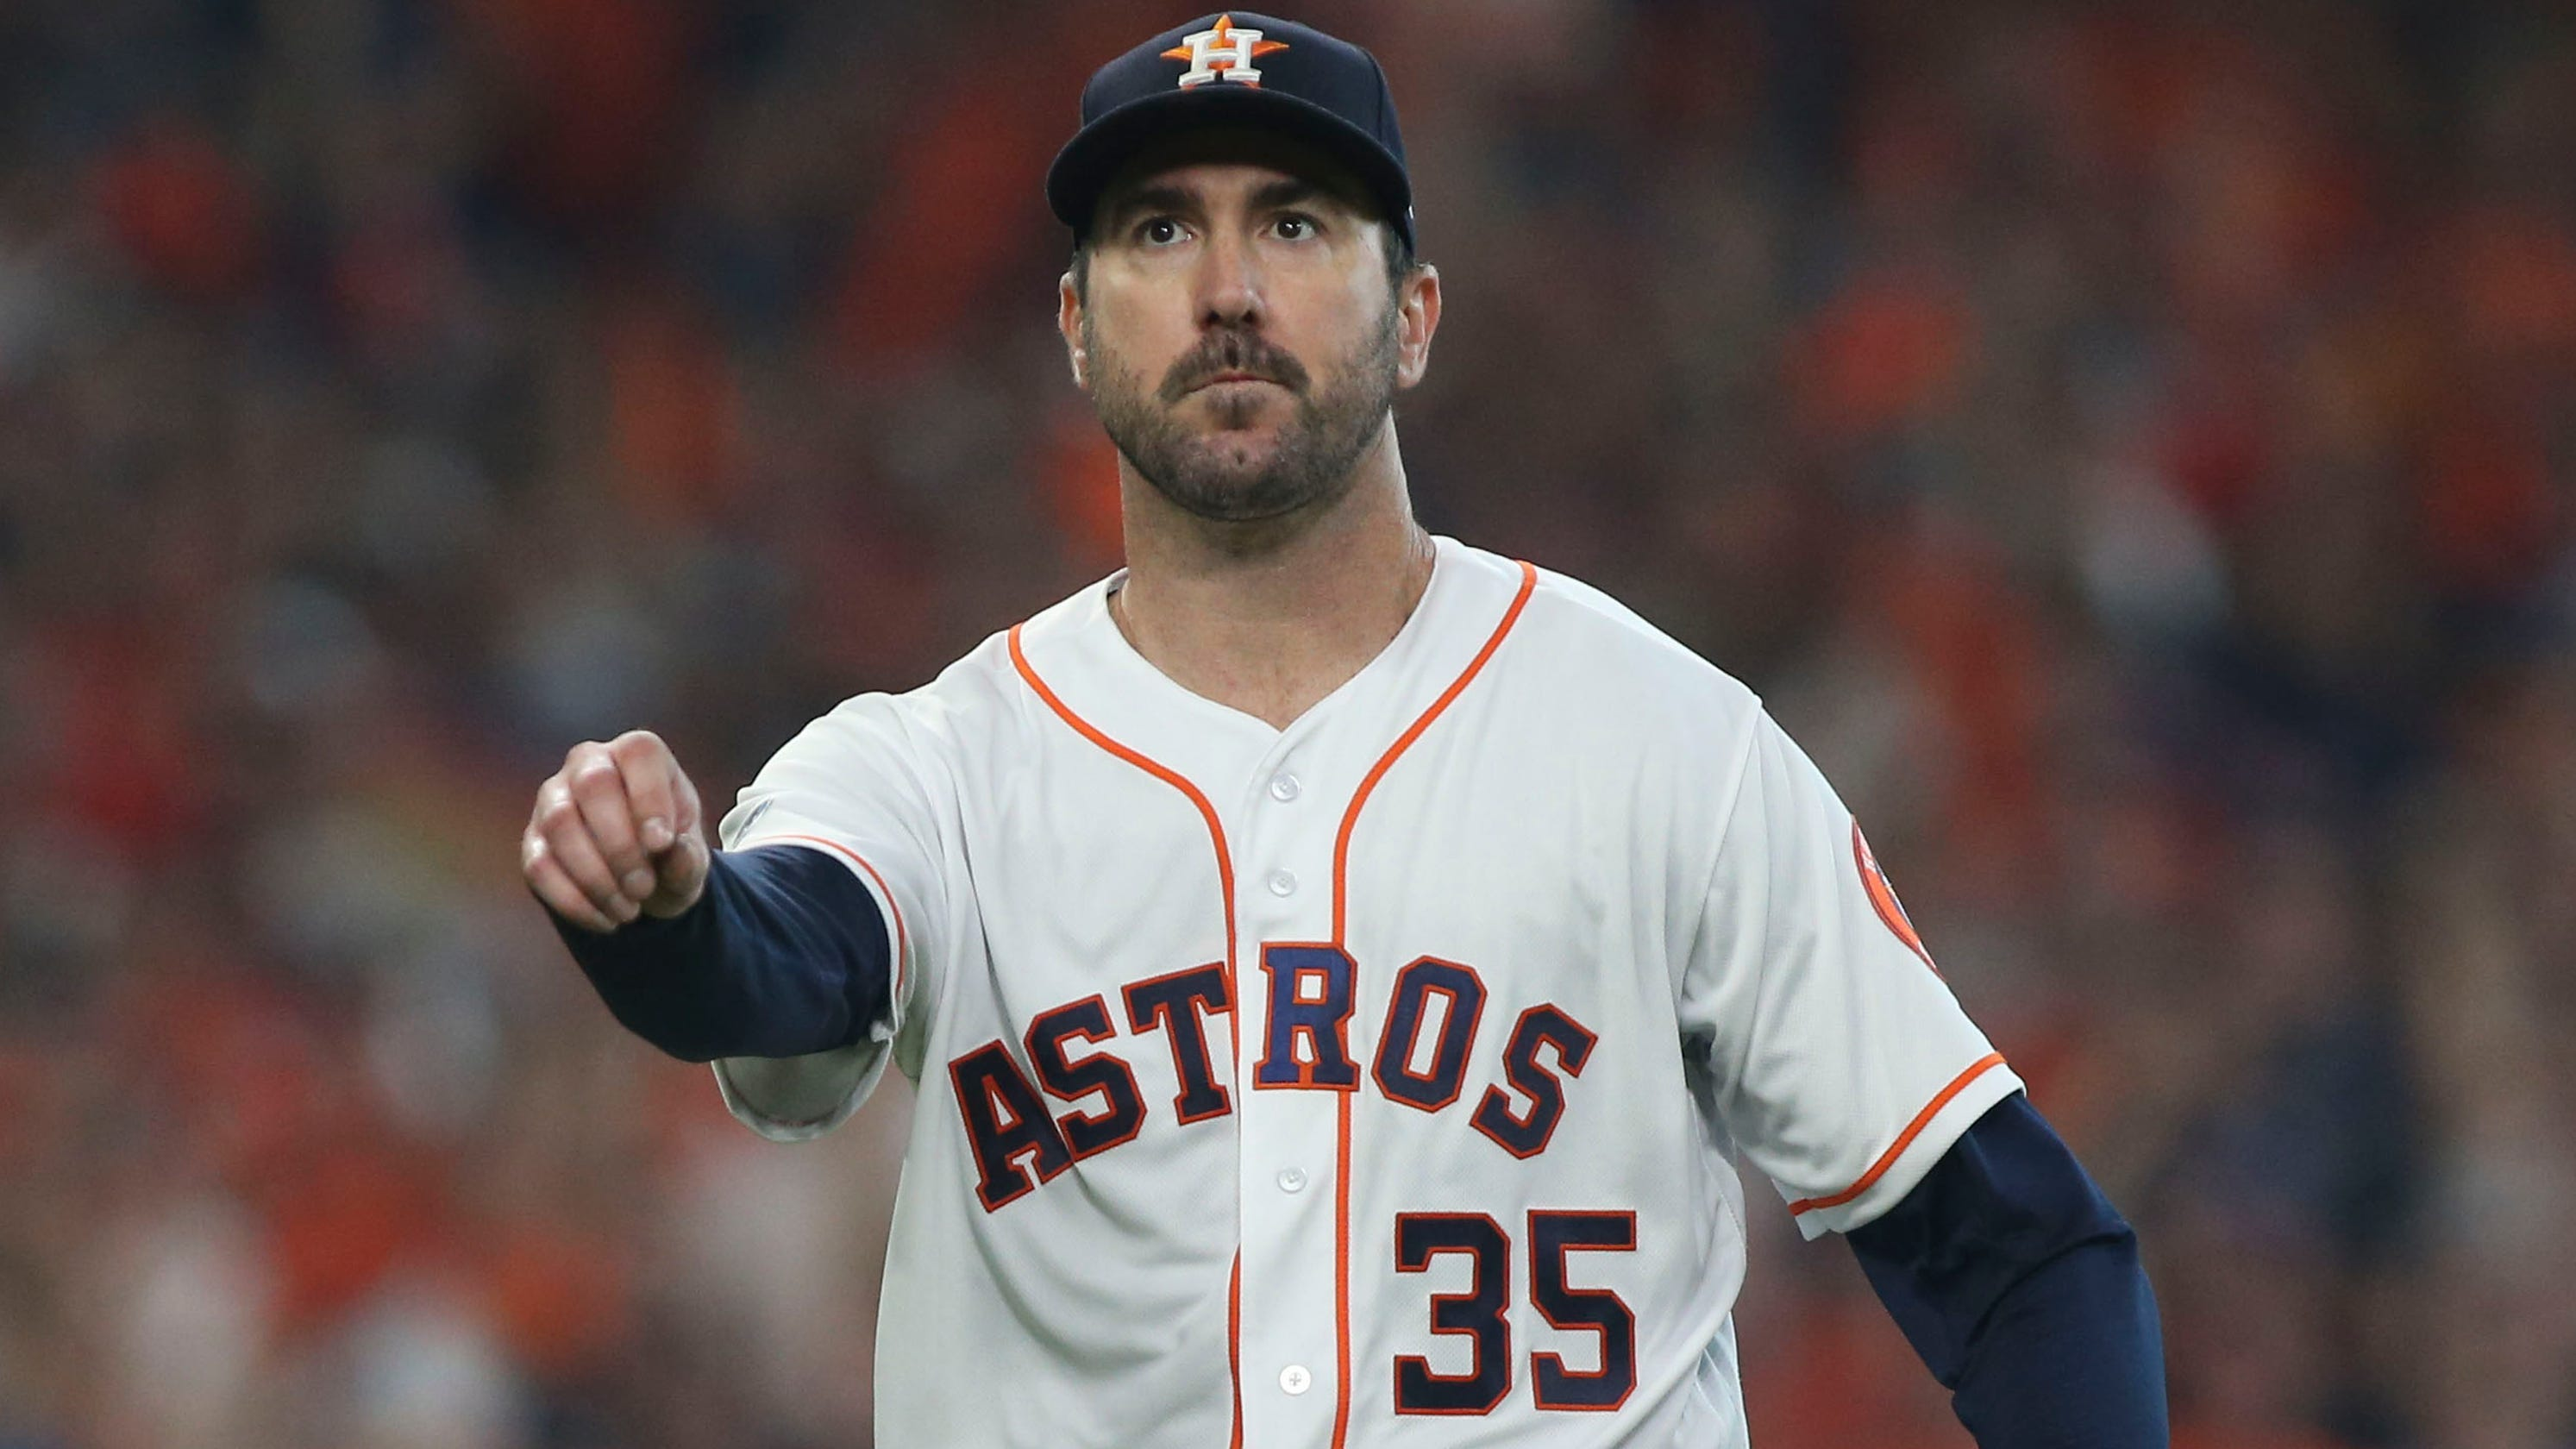 Astros losing Justin Verlander massive blow to their present, future